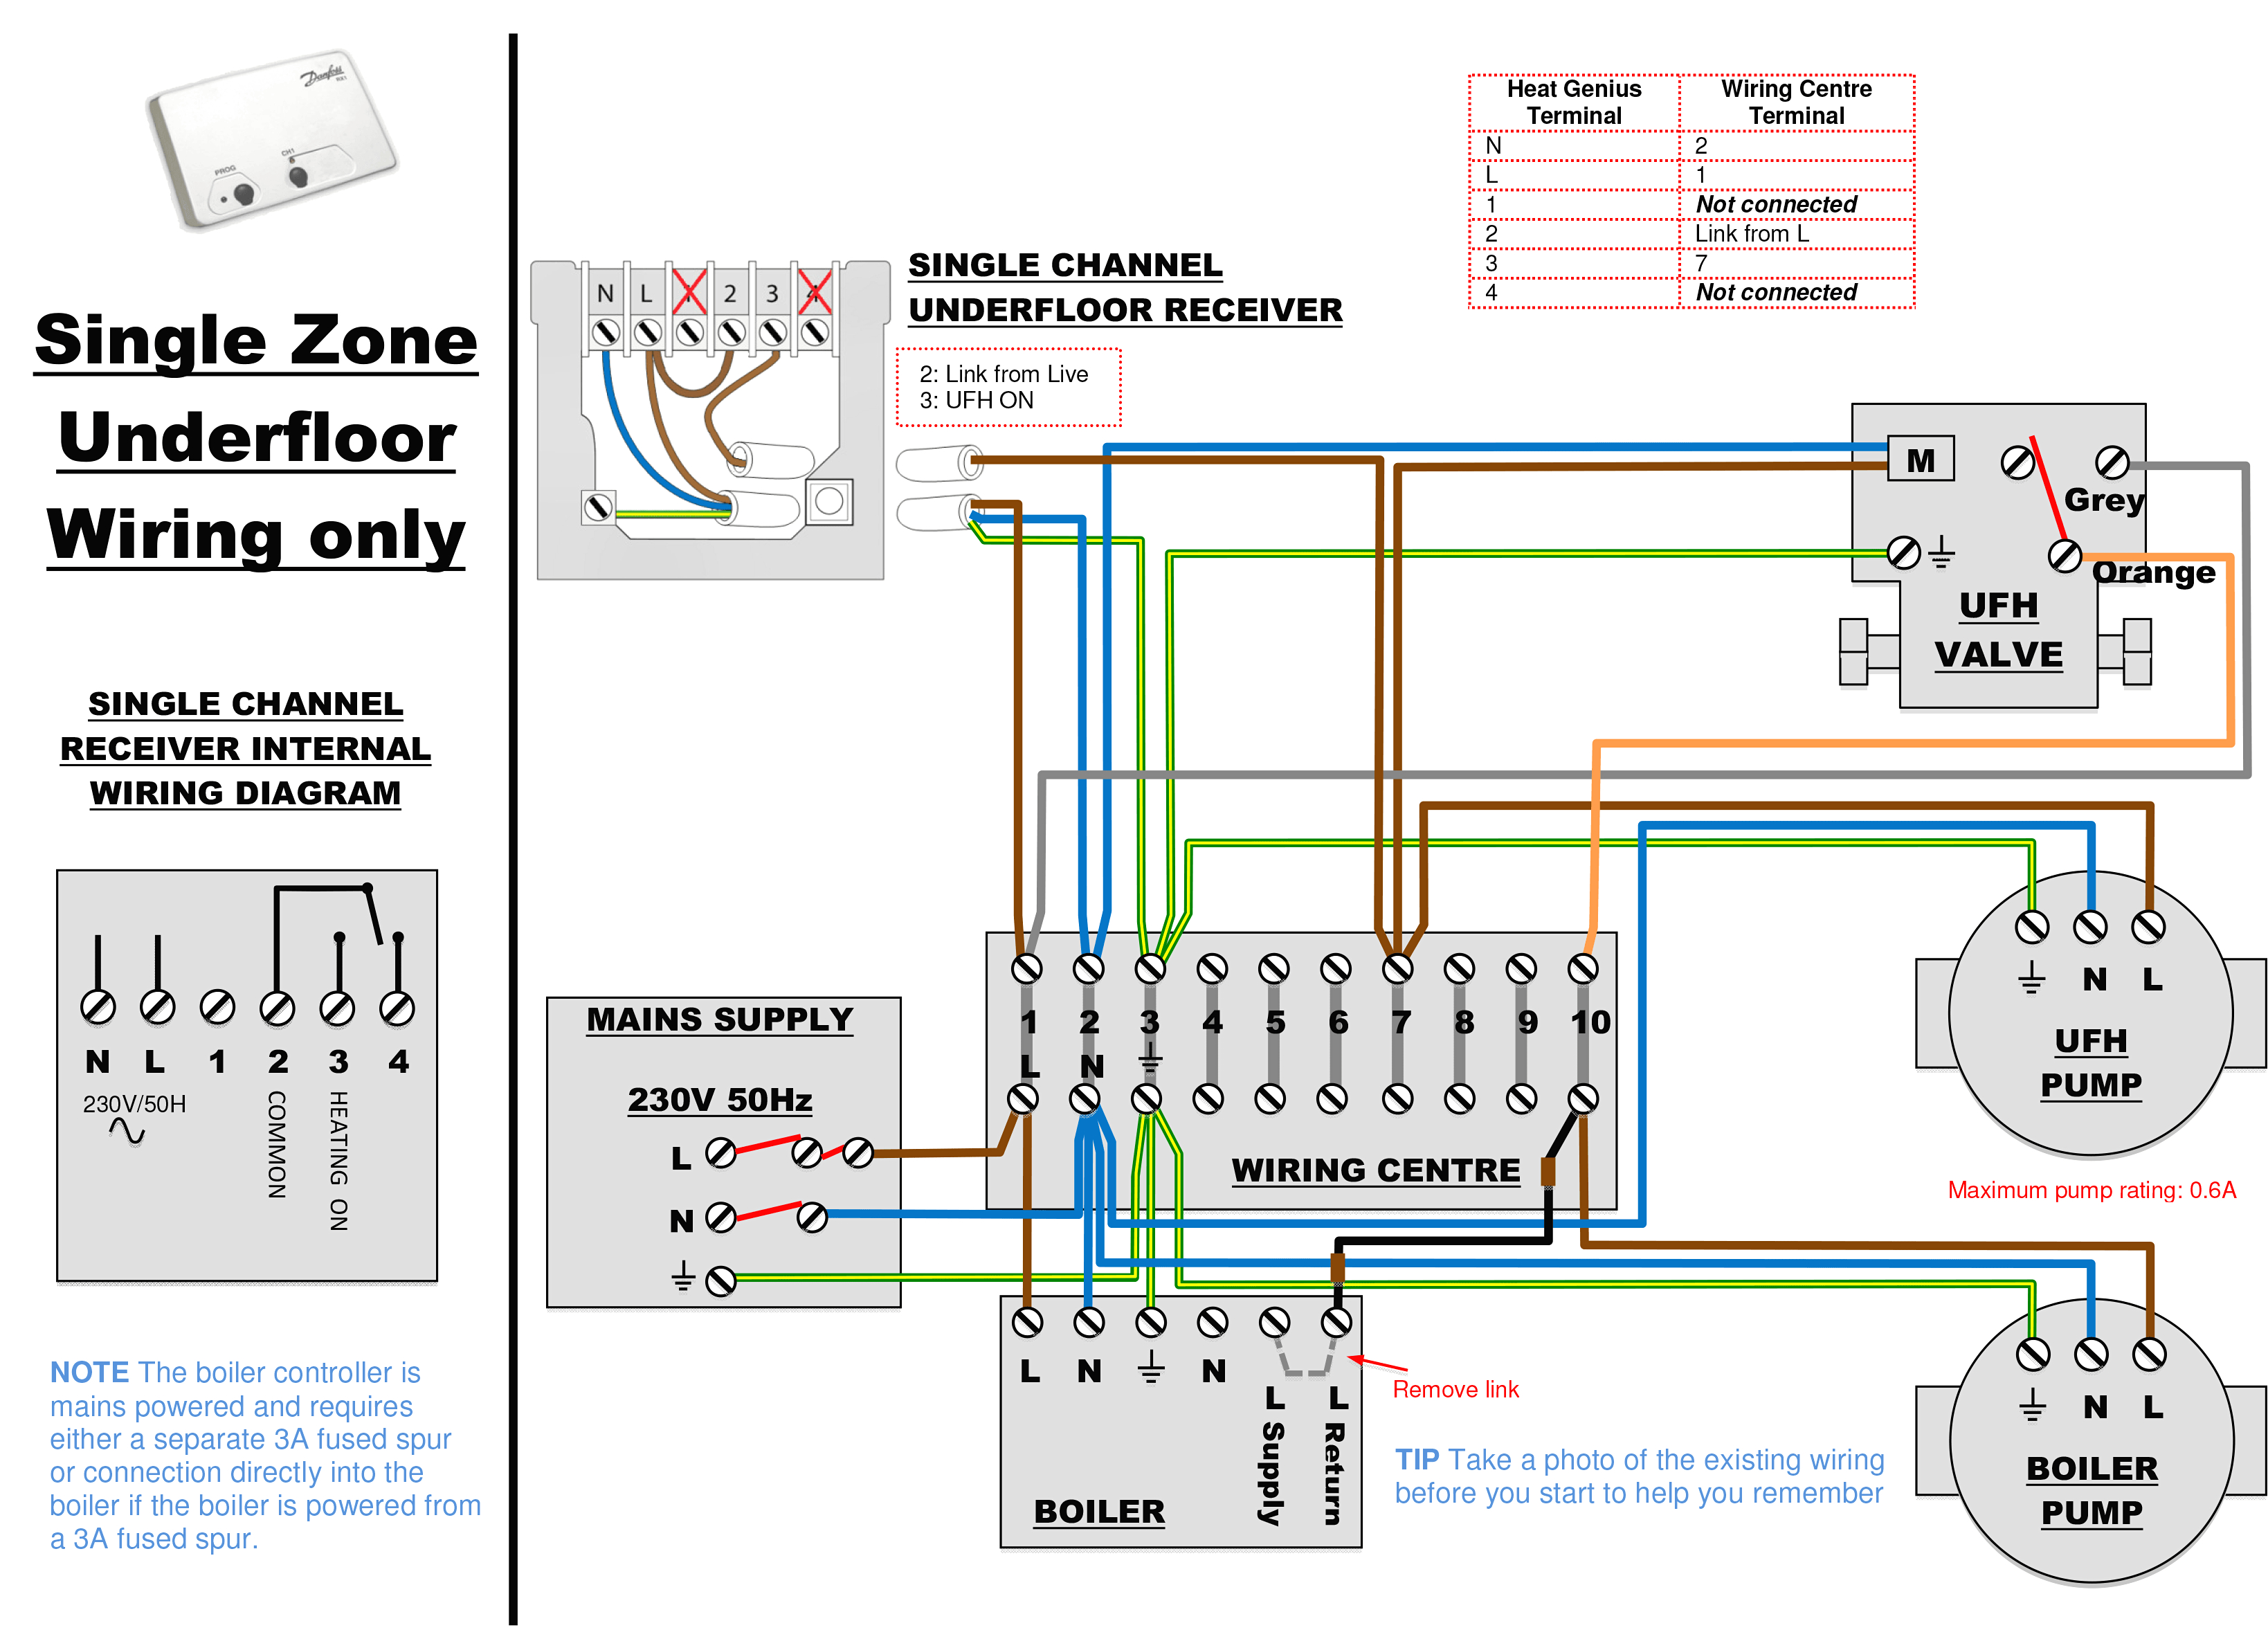 boiler wiring diagram for thermostat Collection-Hive thermostat Wiring Diagram Fresh Boiler Wiring Diagram for thermostat to Y Plan Hive and S 17-h